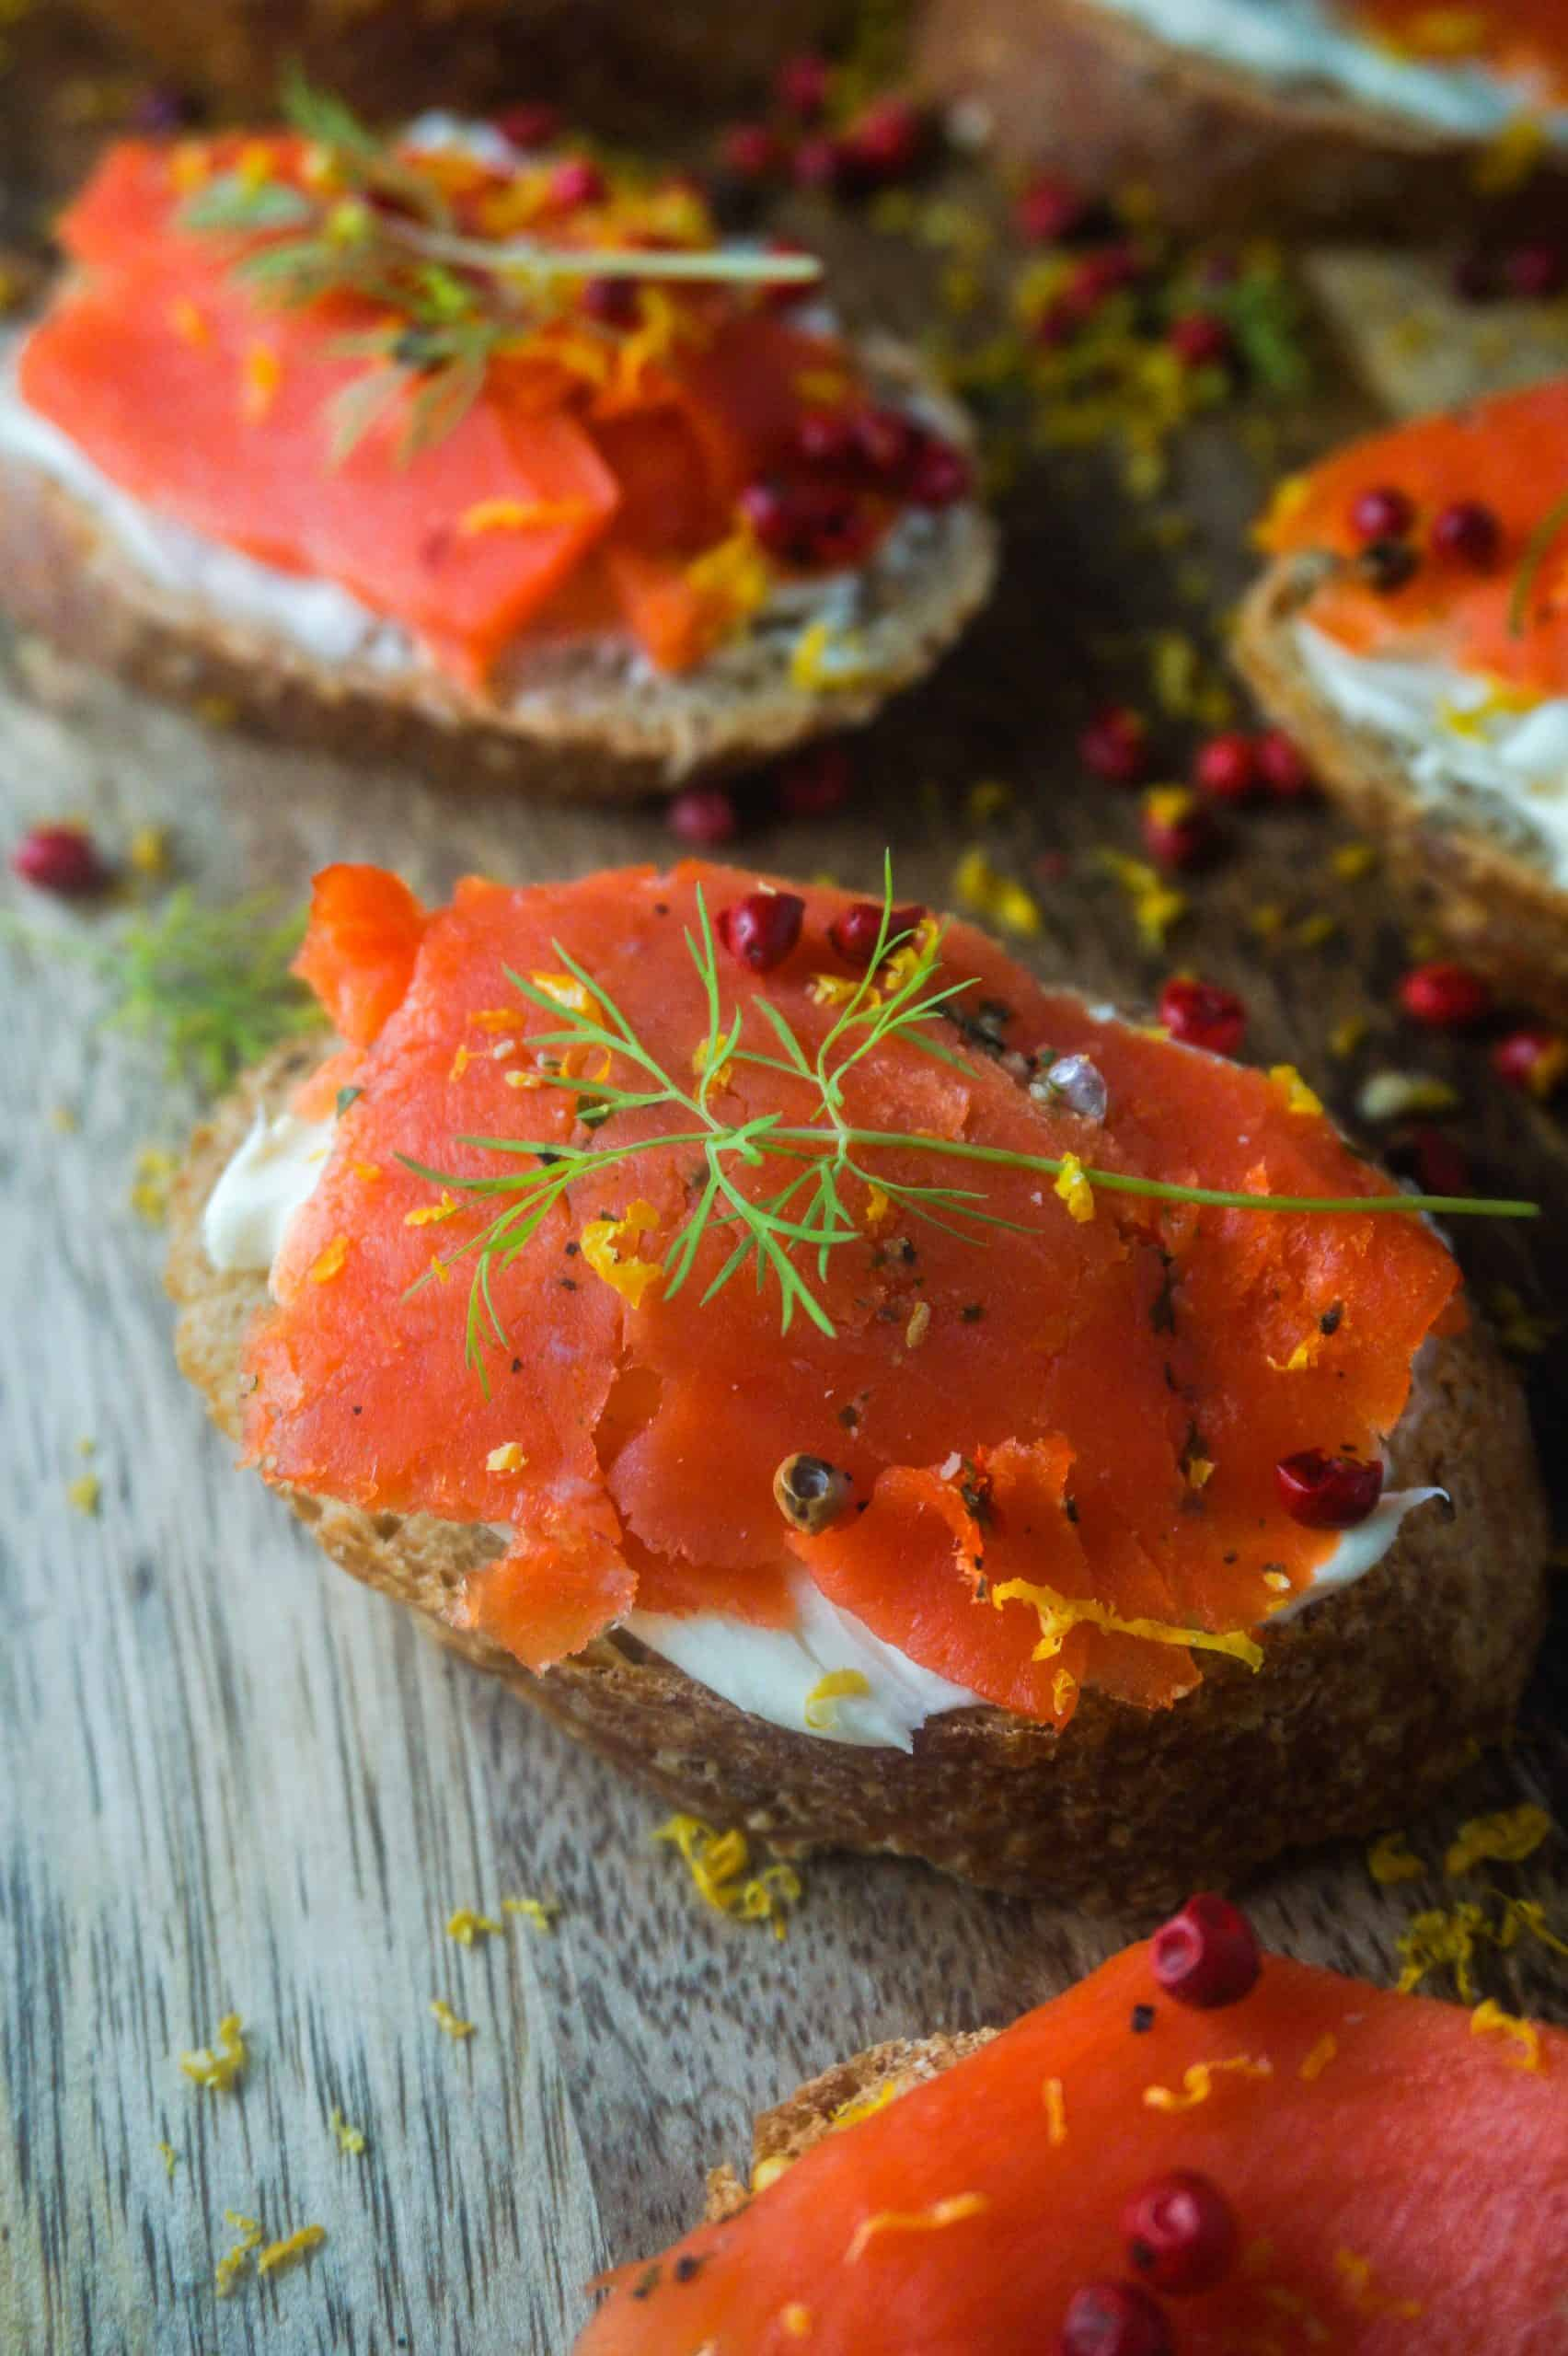 One crostini with smoked salmon, dill, lemon and pink peppercorns